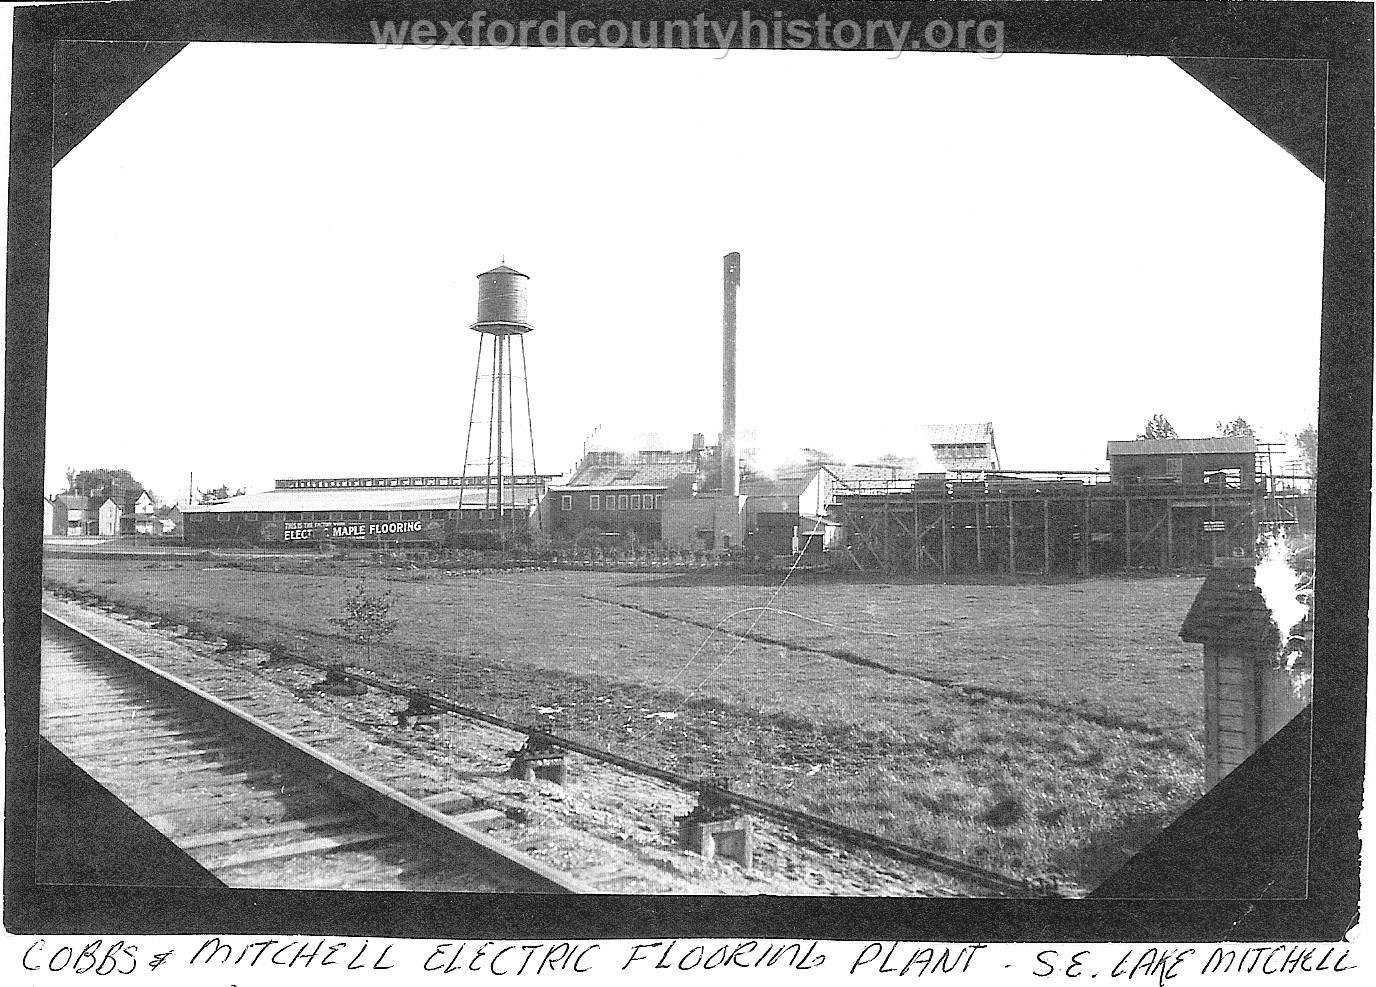 Cobbs and Mitchell Electric Flooring Plant